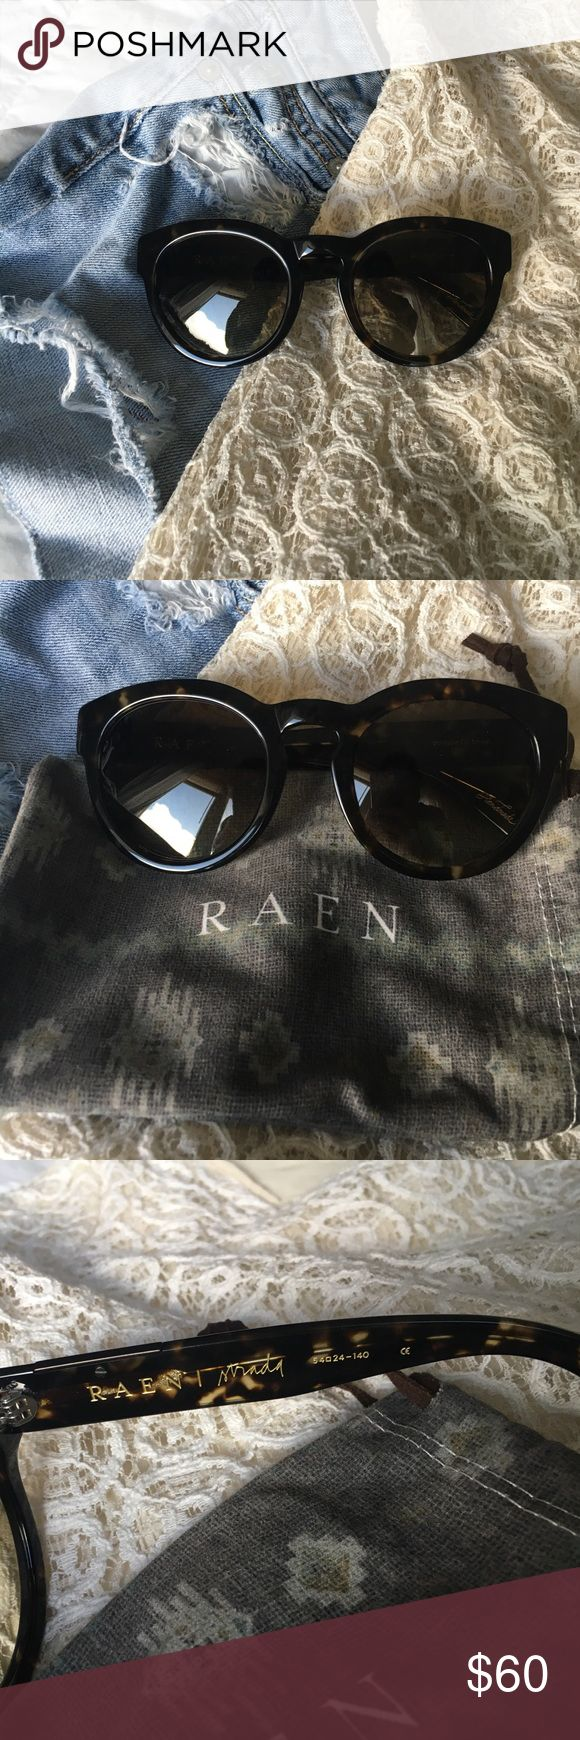 Raen Tortoise Sunglasses Brand new Raen Tortoise sunglasses! Worn once... bought a black pair and tortoise pair, like black better! Superb quality and acetate with these sunglasses. In perfect conditon. Comes with Raen case (shown in listing pictures) 🌸✌🏻 Raen Accessories Sunglasses